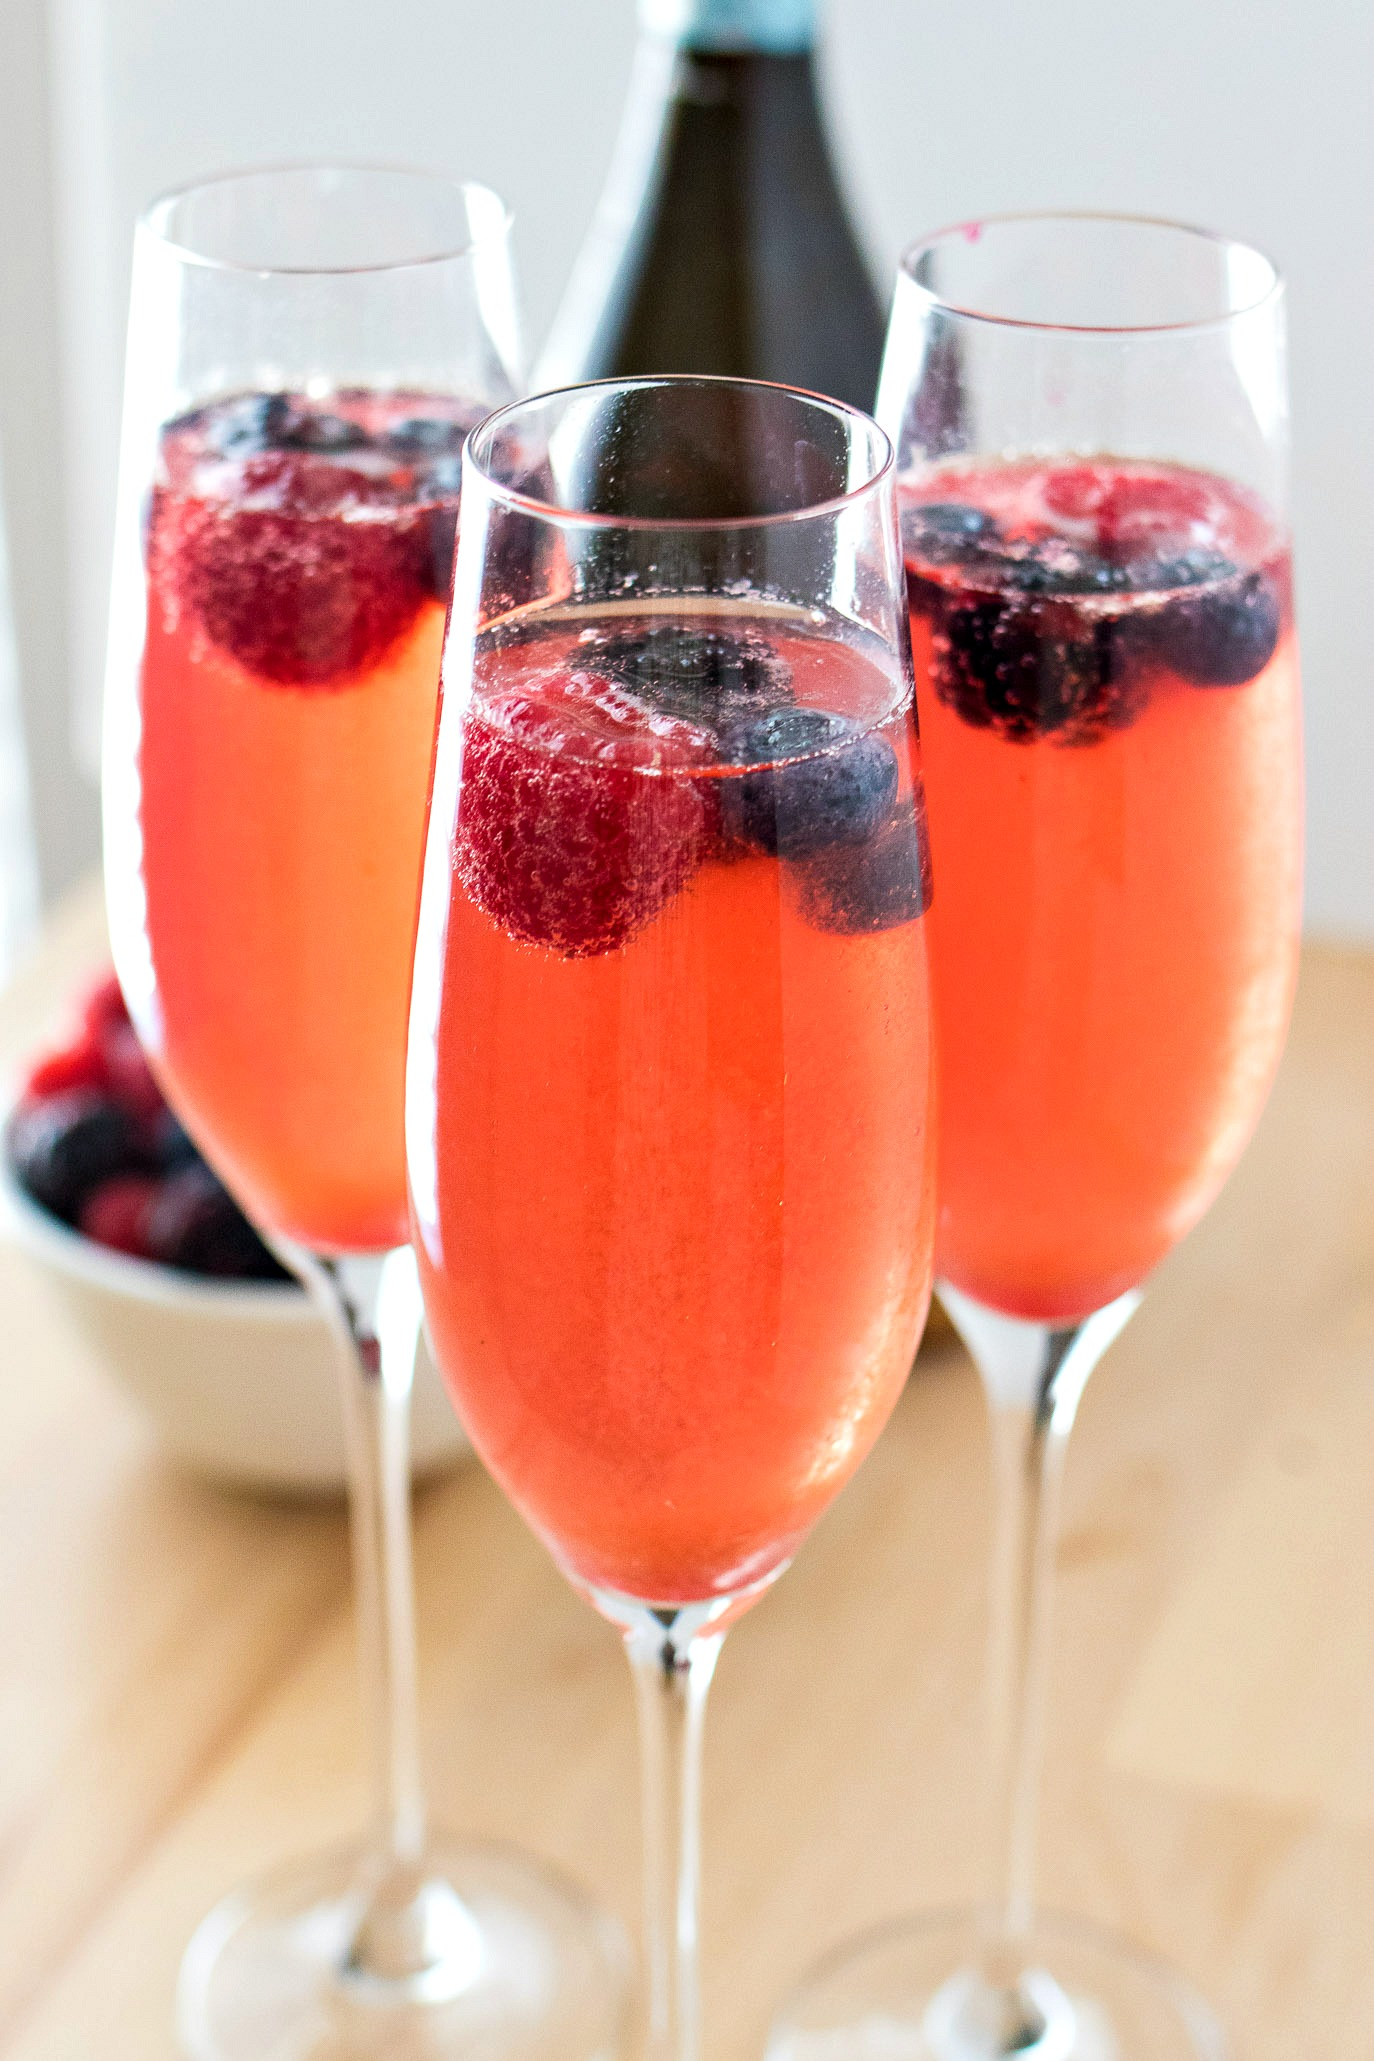 Three champagne flutes of Berry Mimosas